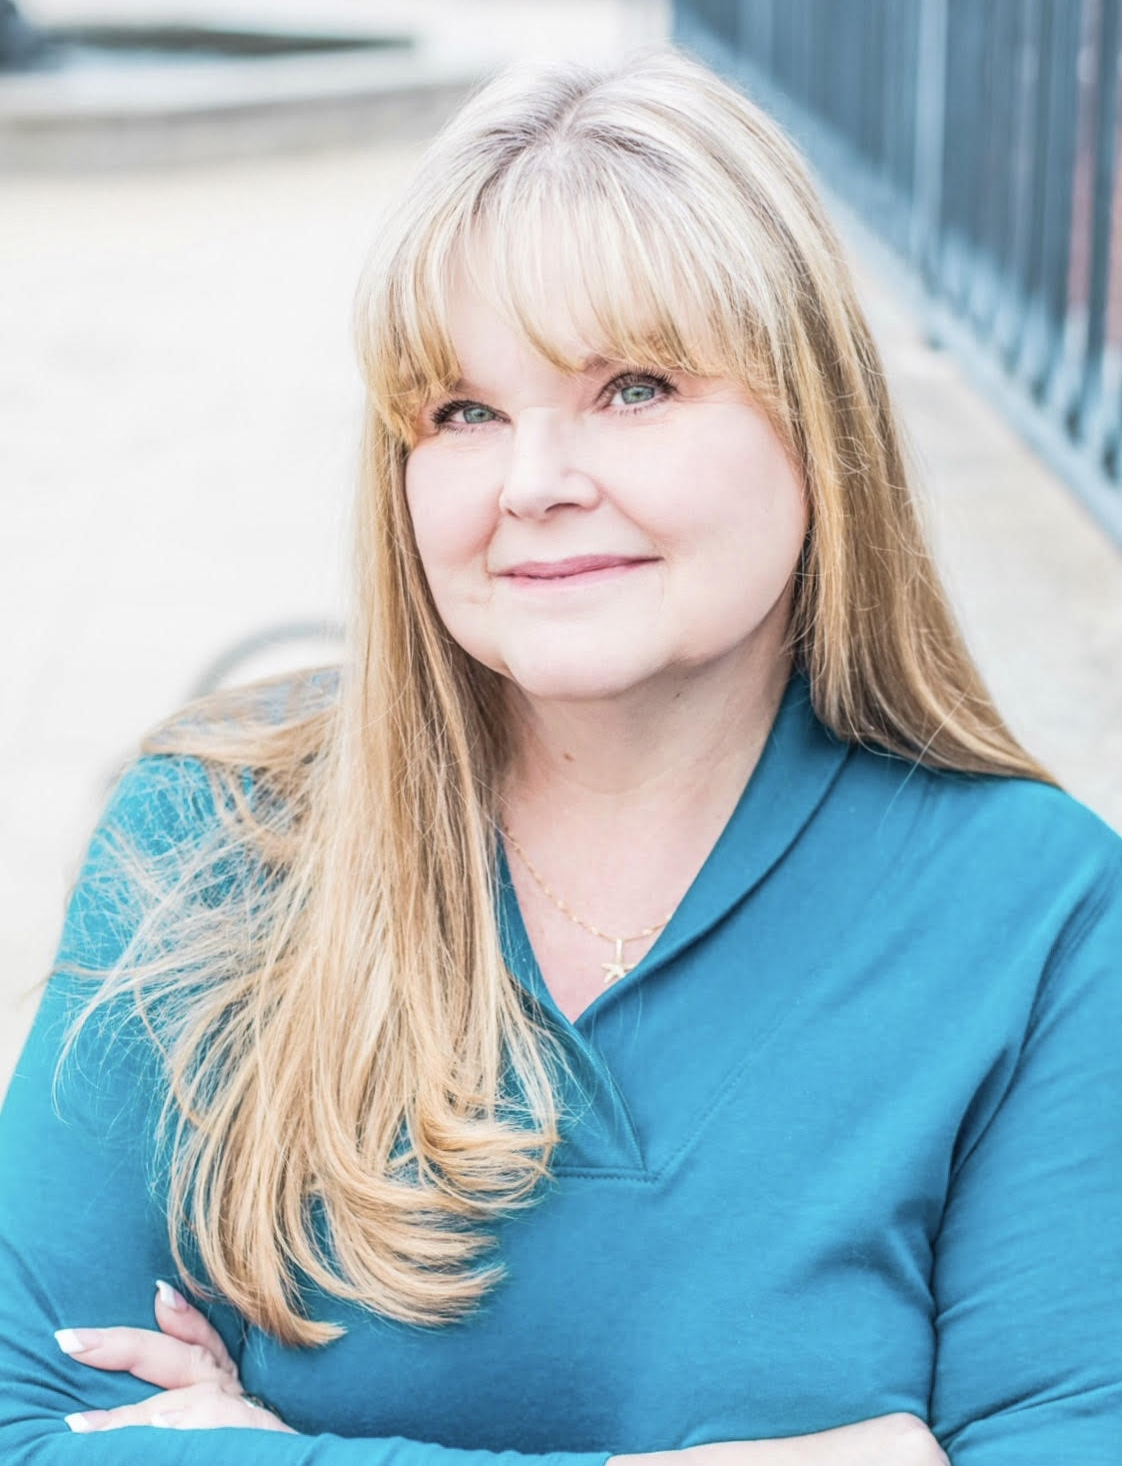 Kellie SharpeOwner - With an inborn sense of knowing a great writer when she sees one, Kellie lives for the moment an author begins to believe their work can come to life as a book, and then for the moment it does. Her authors are her family, and their success is hers.